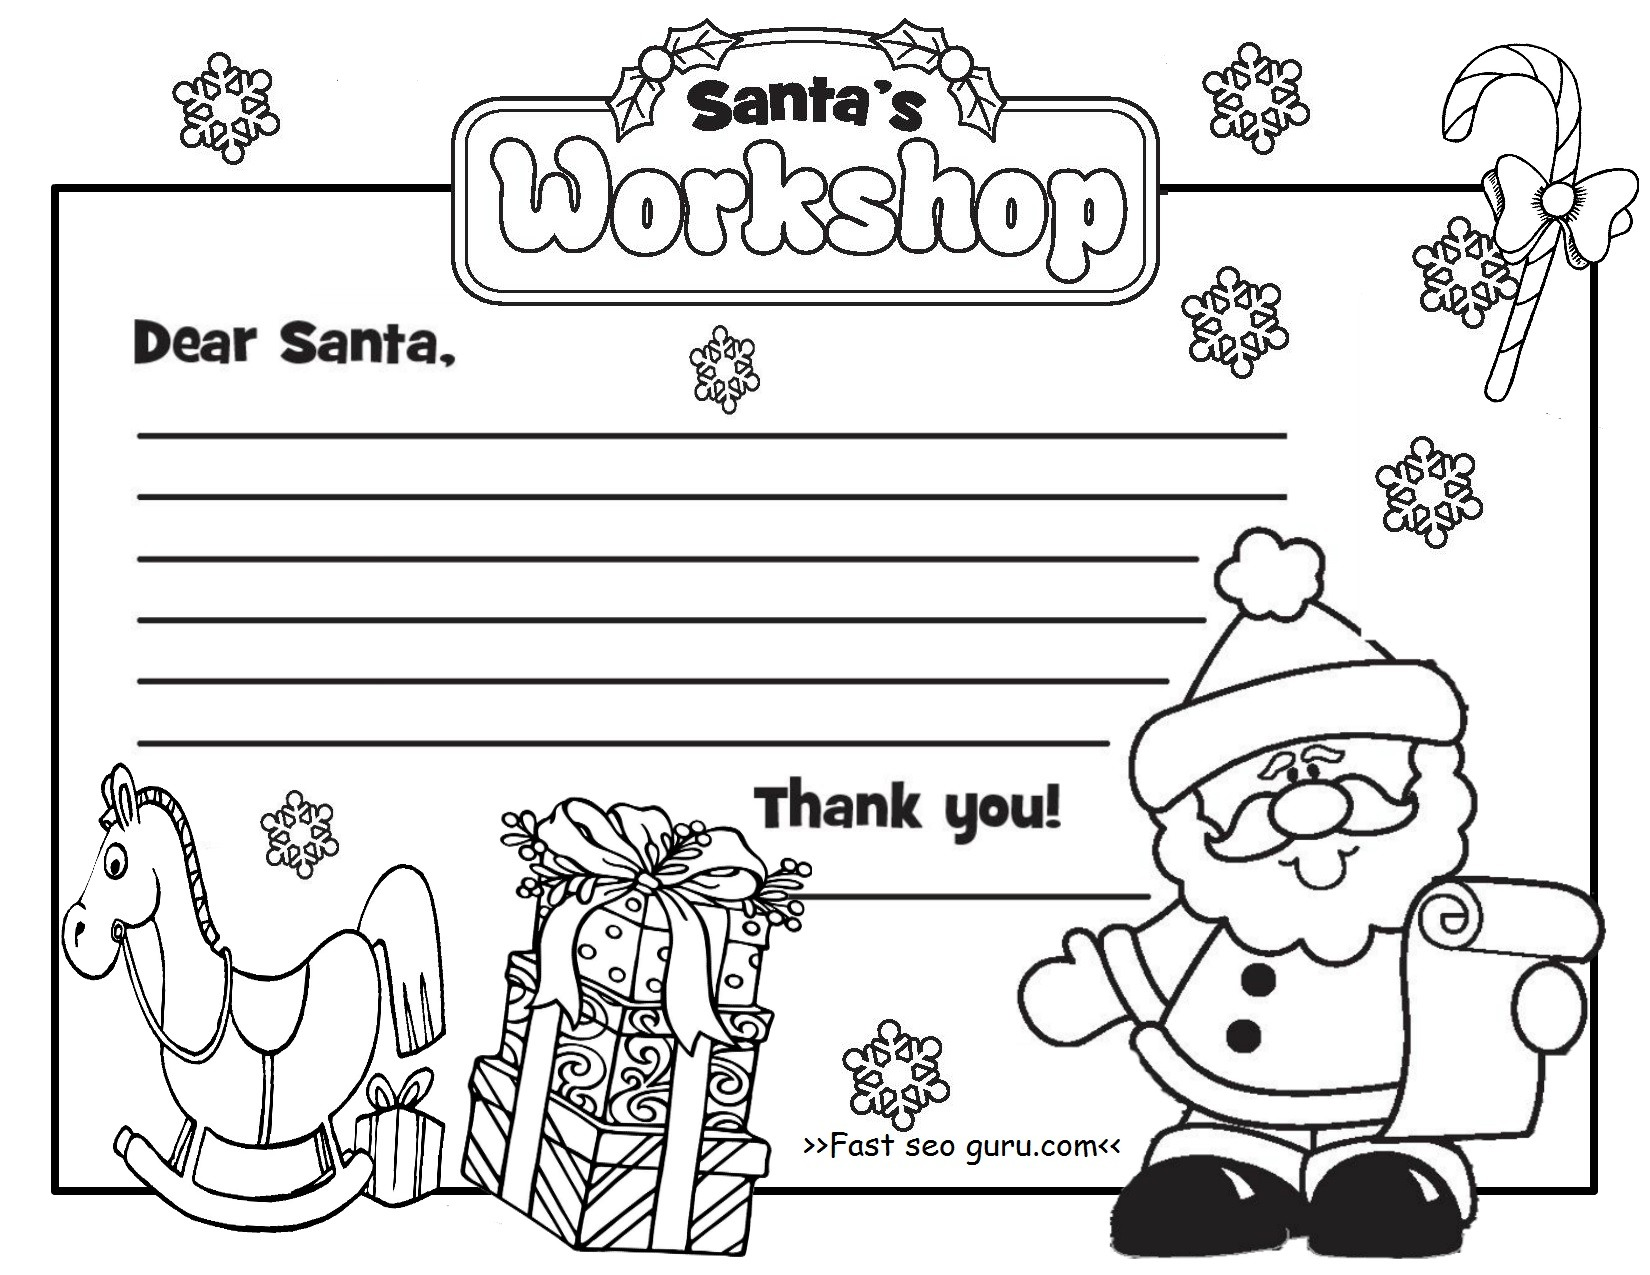 Dear Santa Coloring Pages Print With Claus On His Sleigh Free Christmas Village